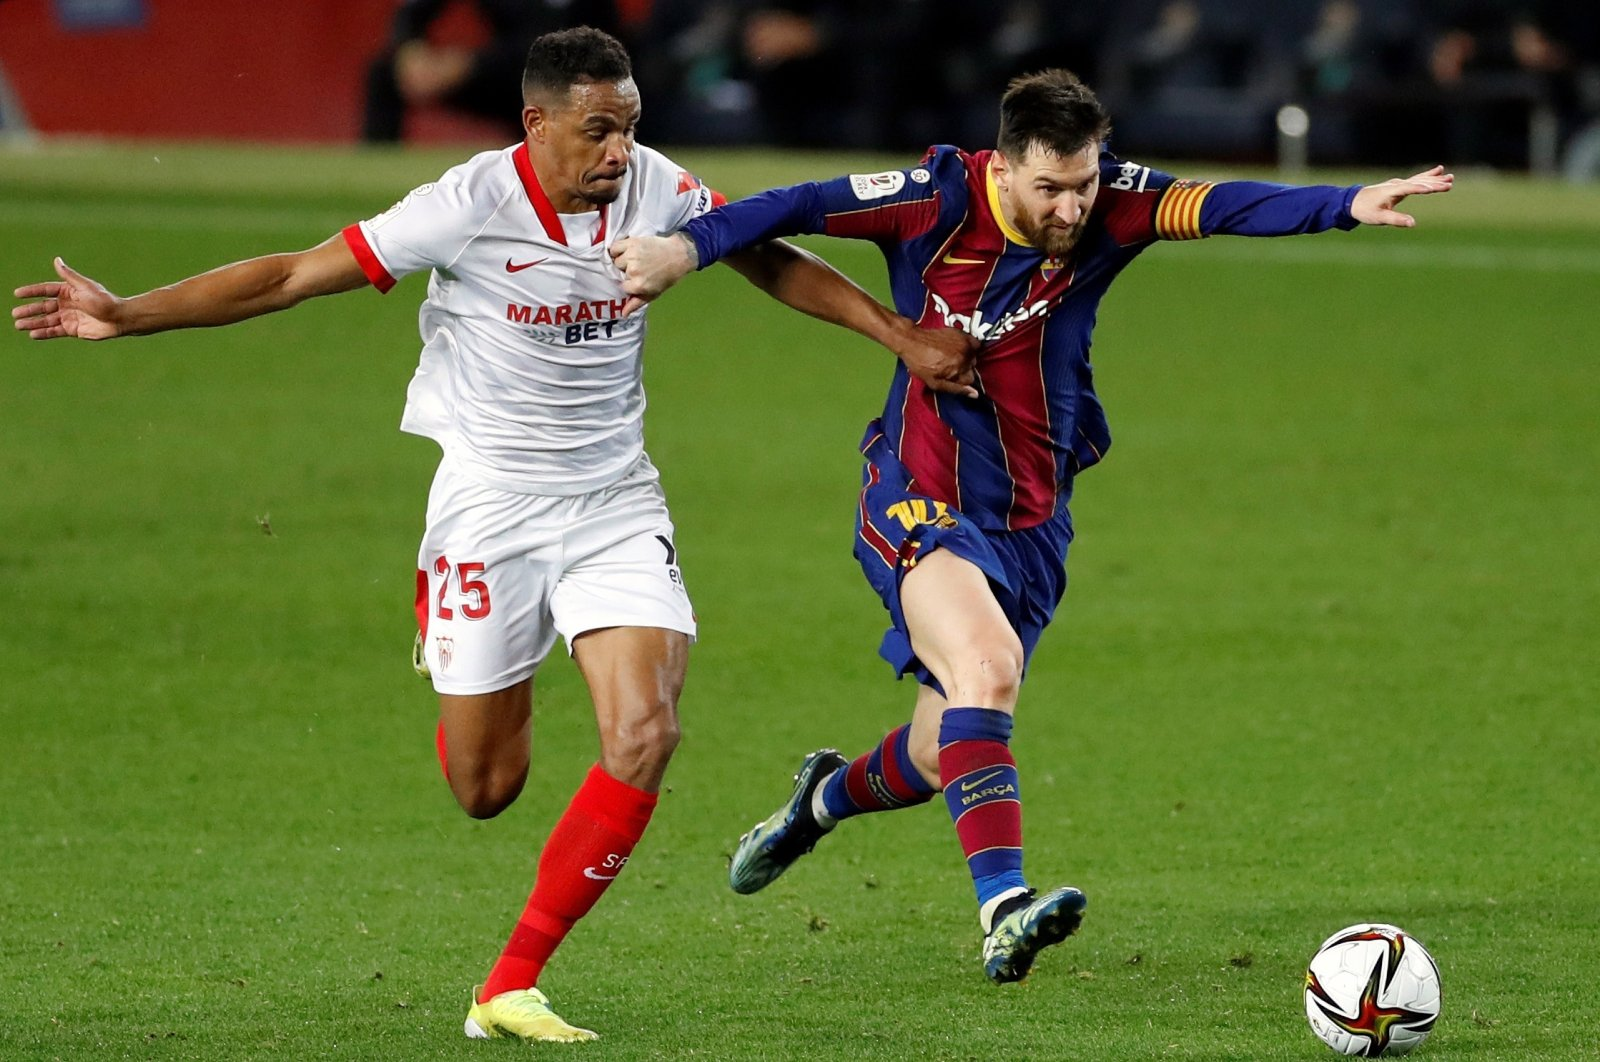 Barcelona's Lionel Messi (R) vies for the ball with Sevilla midfielder Fernando Reges (L) during the second leg Copa Del Rey semifinal at Camp Nou, Barcelona, Spain, March 3, 2021. (EPA Photo)